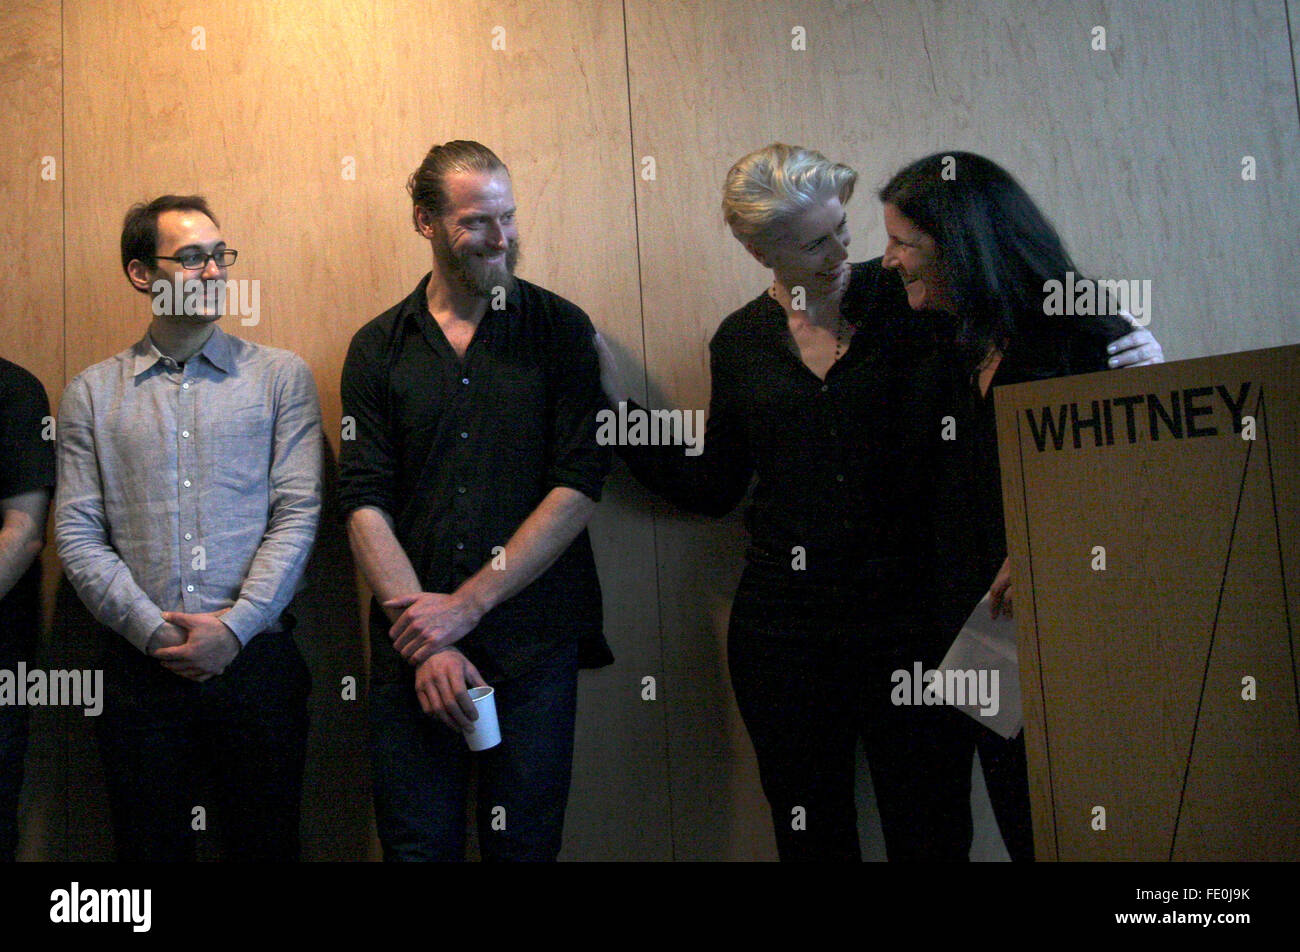 New York City, NY, USA. 3rd February, 2016. Laura Poitras is congratulated by her production team after making remarks - Stock Image